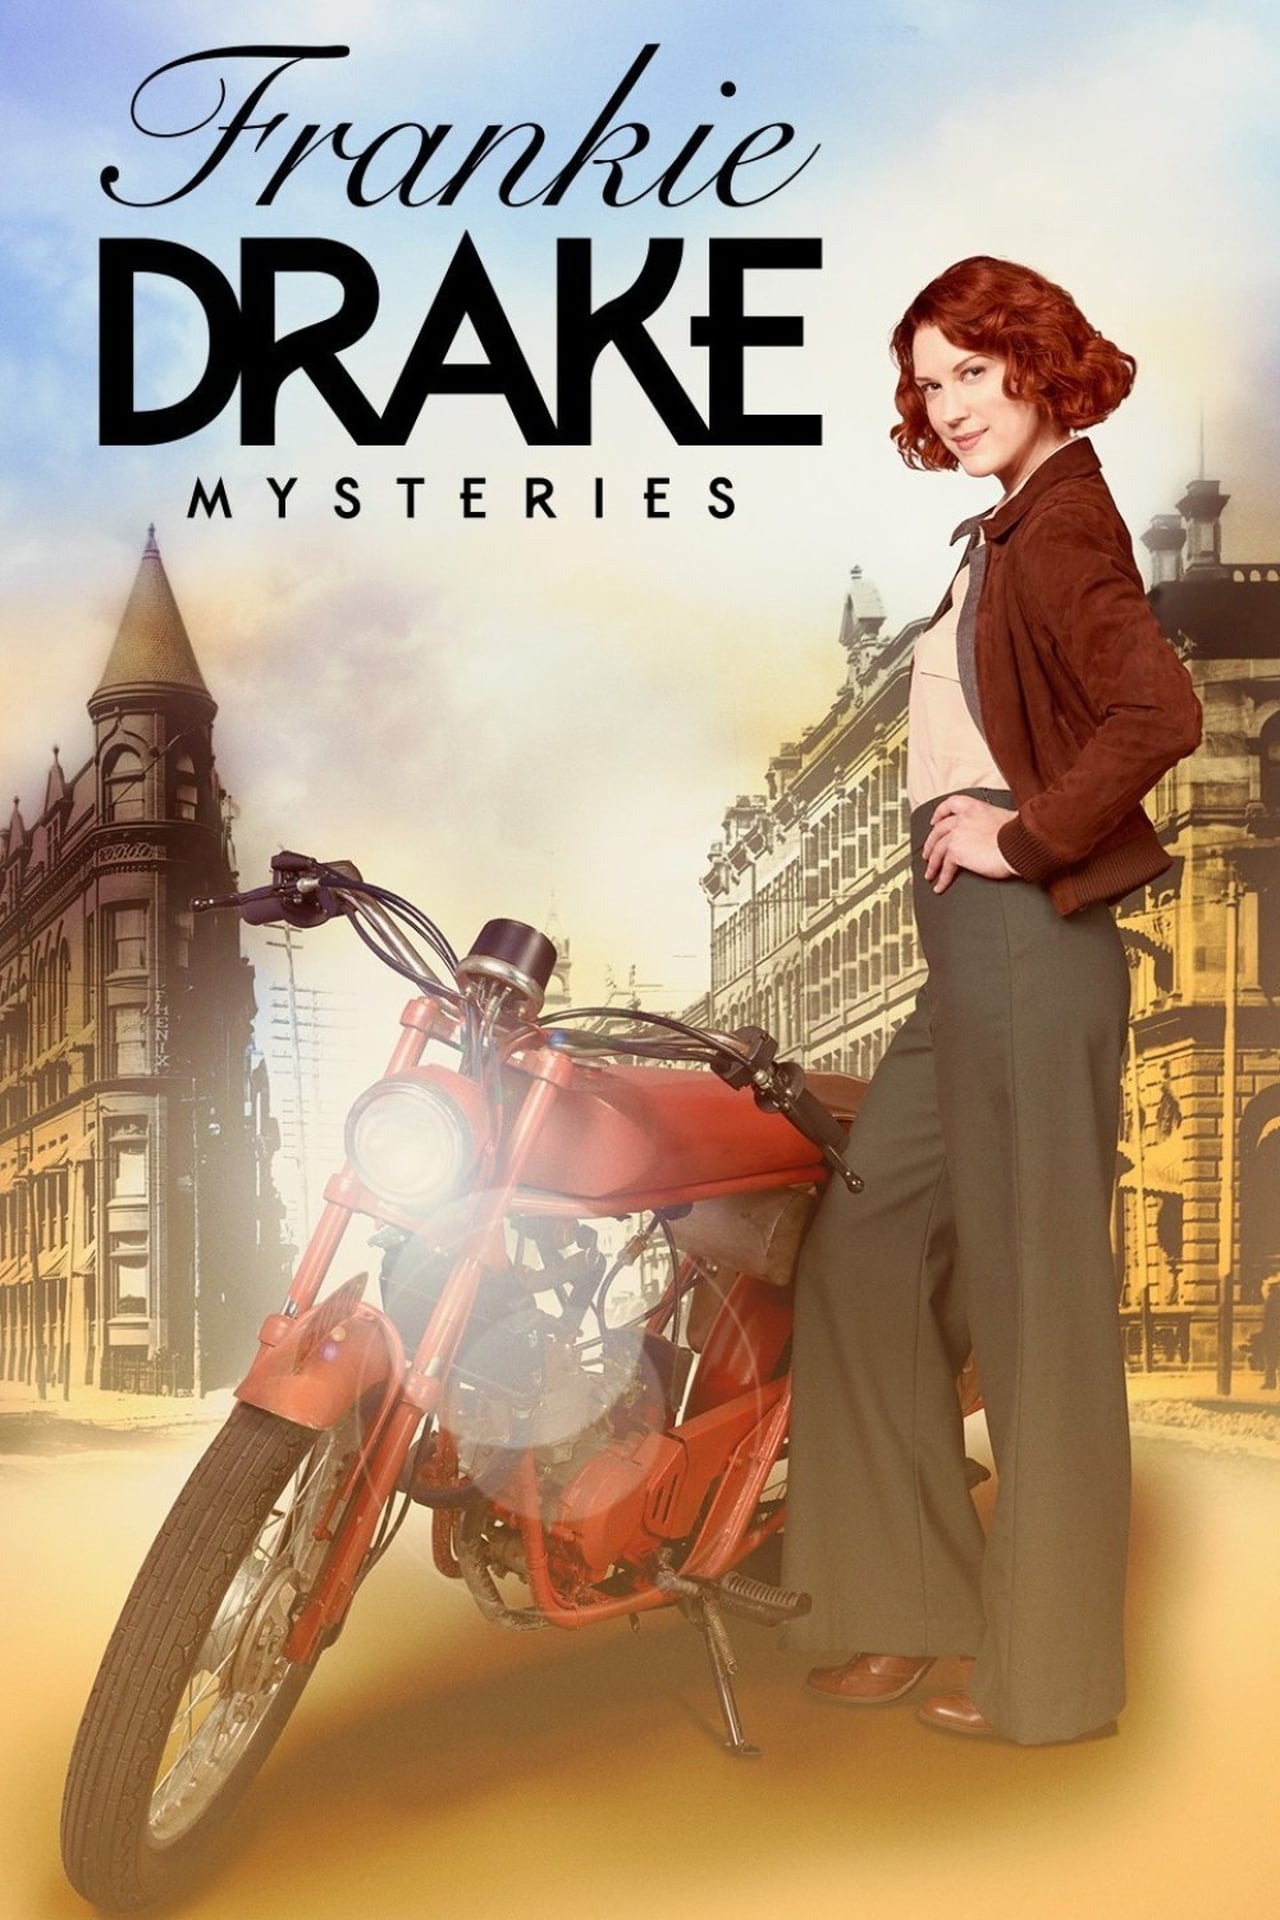 Frankie Drake Mysteries Season 1 (2017) putlockers cafe